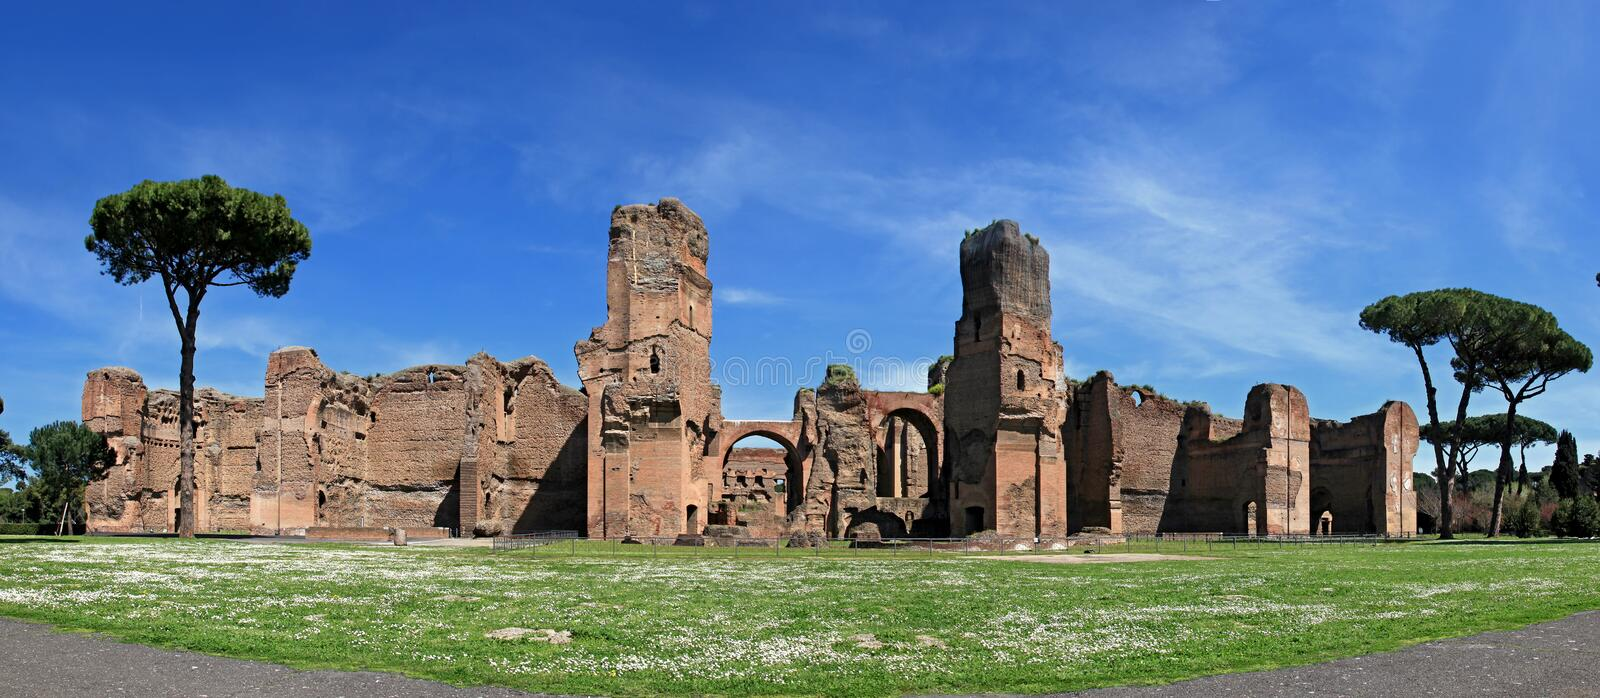 The ruins of the Baths of Caracalla in Rome. Italy royalty free stock image